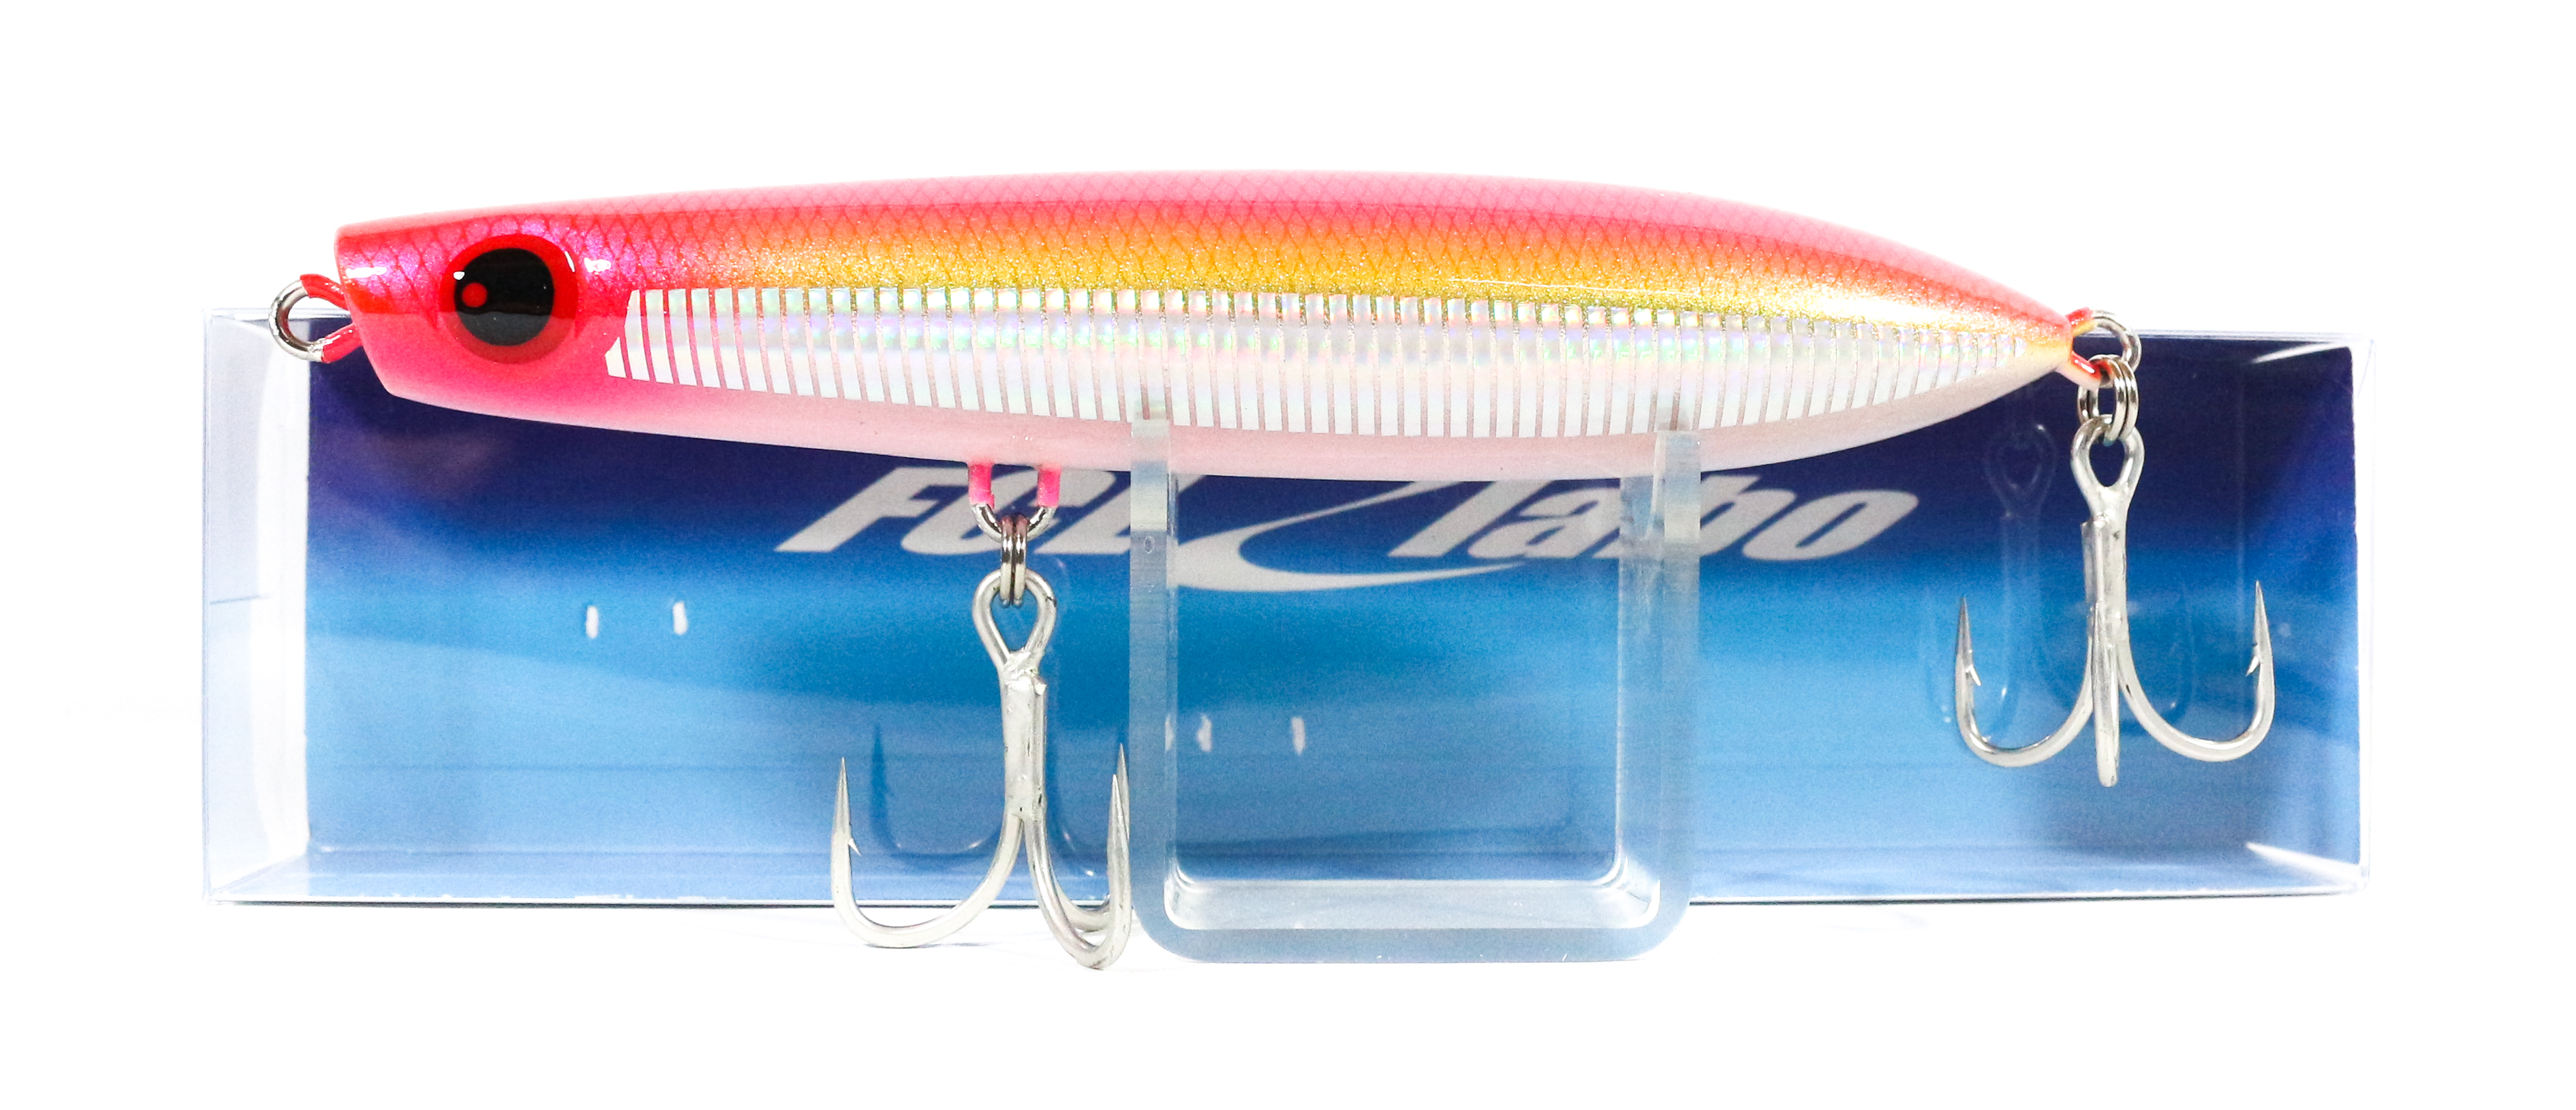 FCL Labo Popper Pencil Nasup 150 Floating Lure 43 grams YLP (4801)